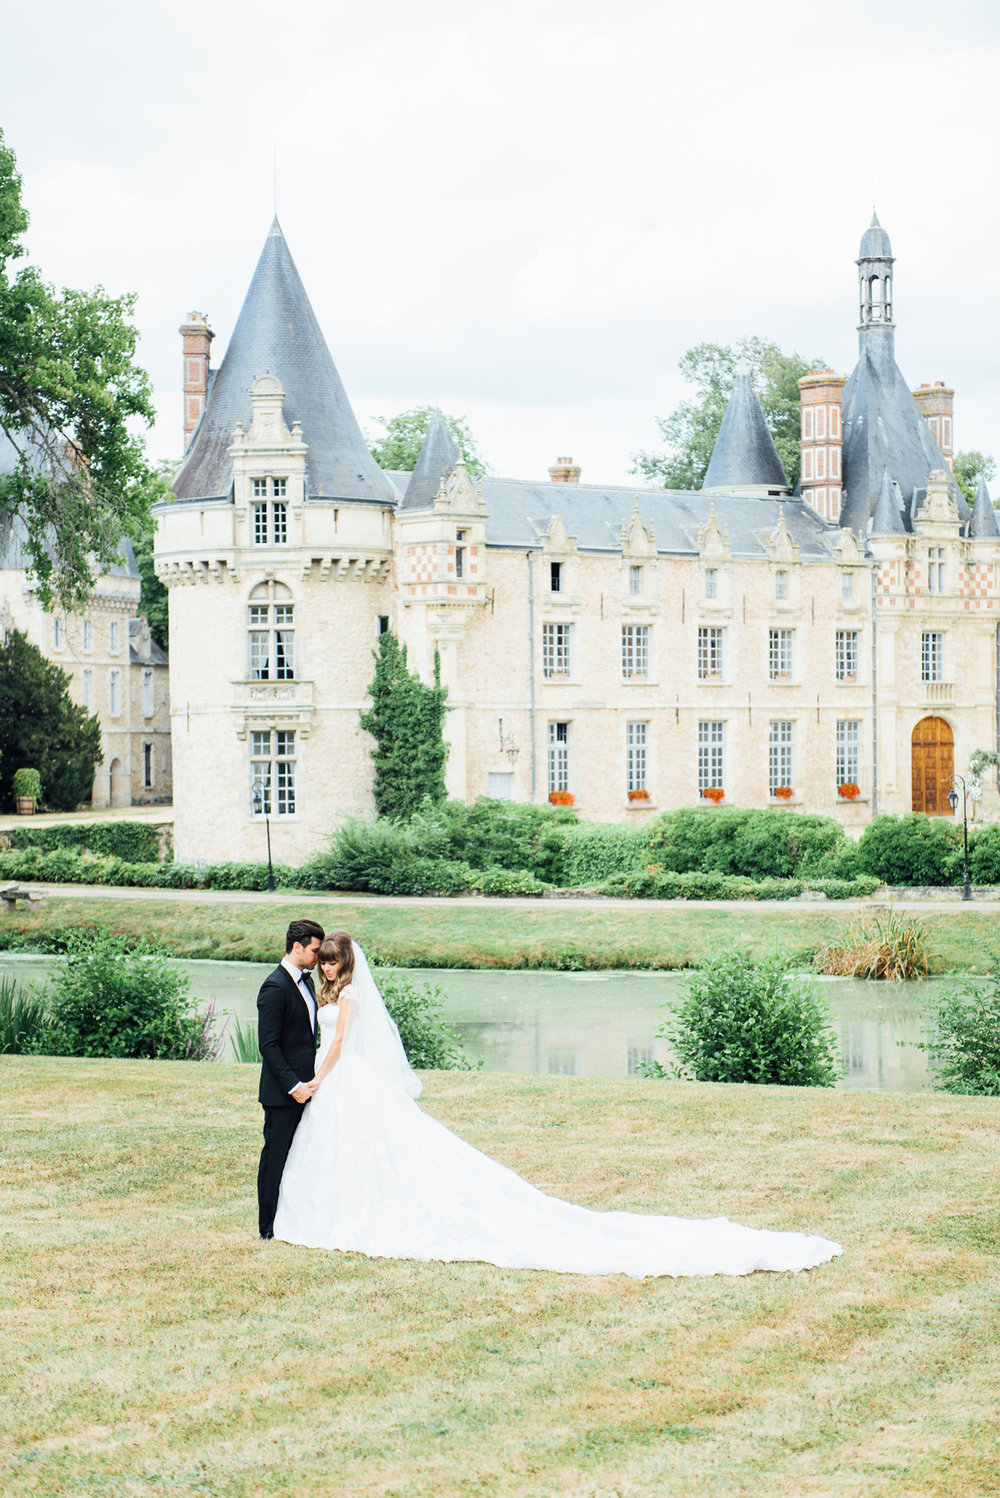 102-katie-mitchell-chateau-wedding-paris-france.jpg